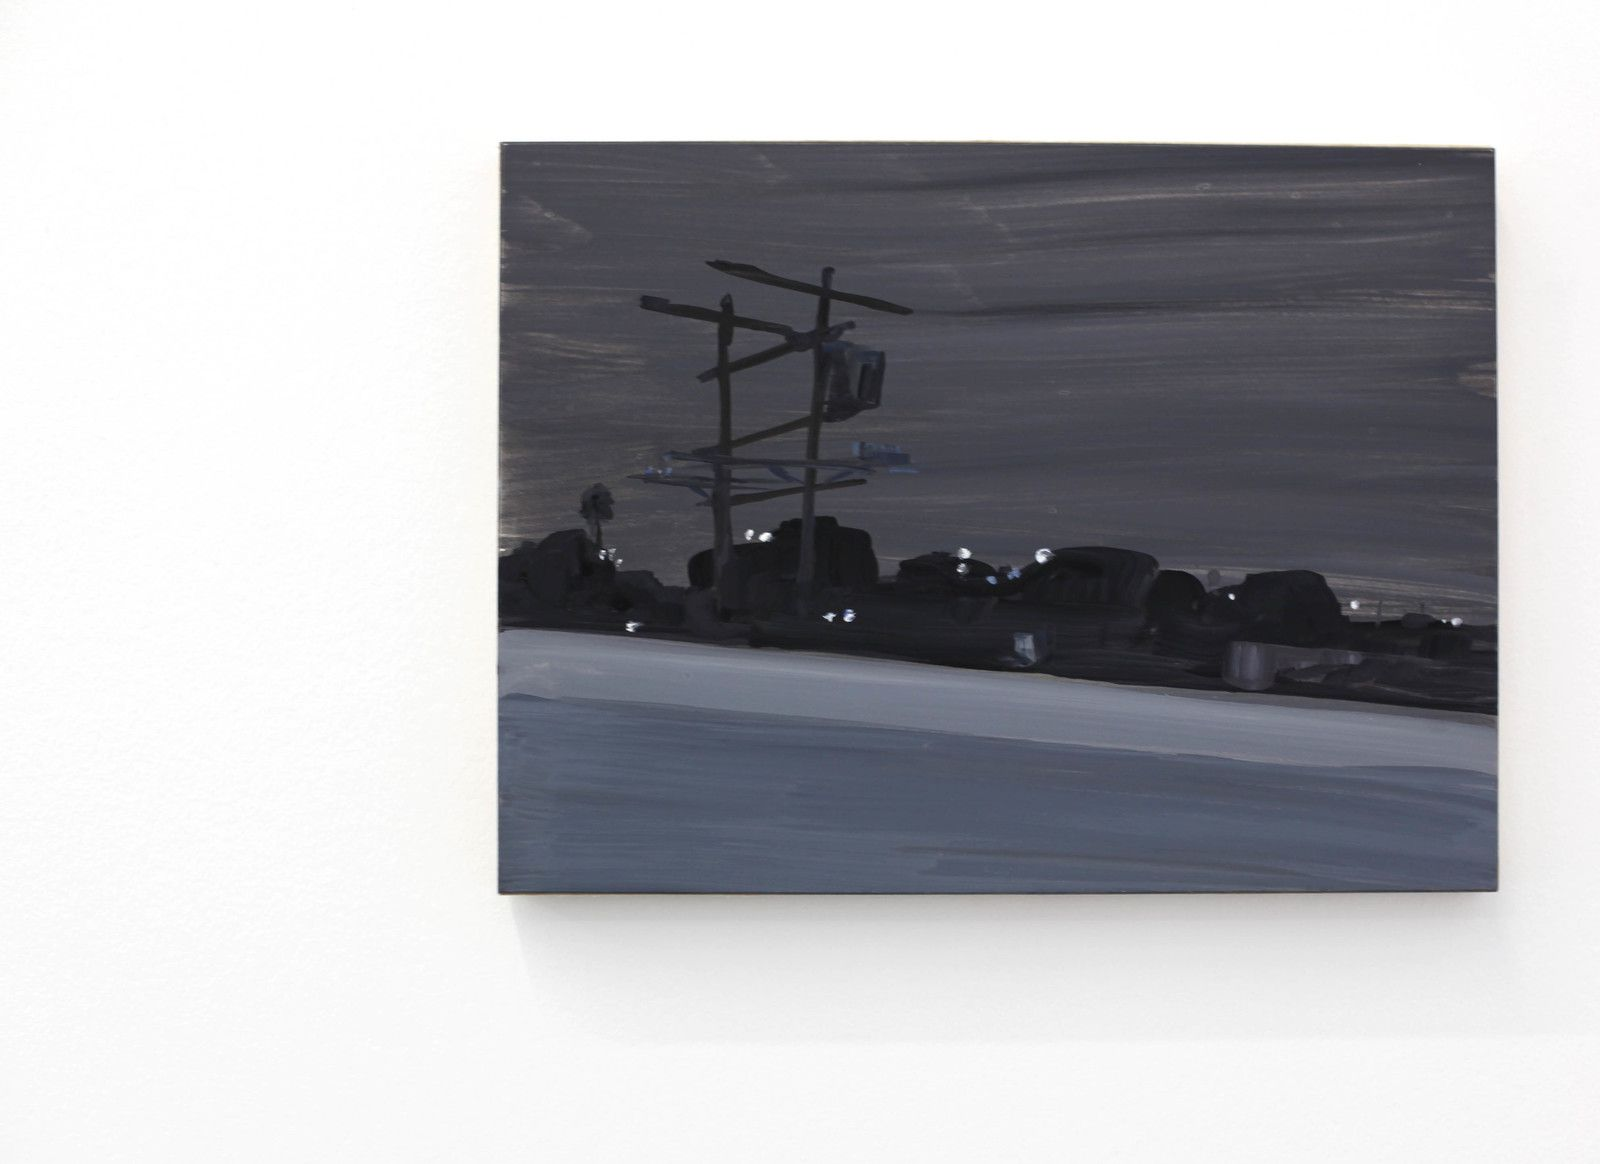 """Highway night #7"", 2019 de Jean Philippe DELHOMME - Courtesy Galerie Perrotin © Photo Éric Simon"